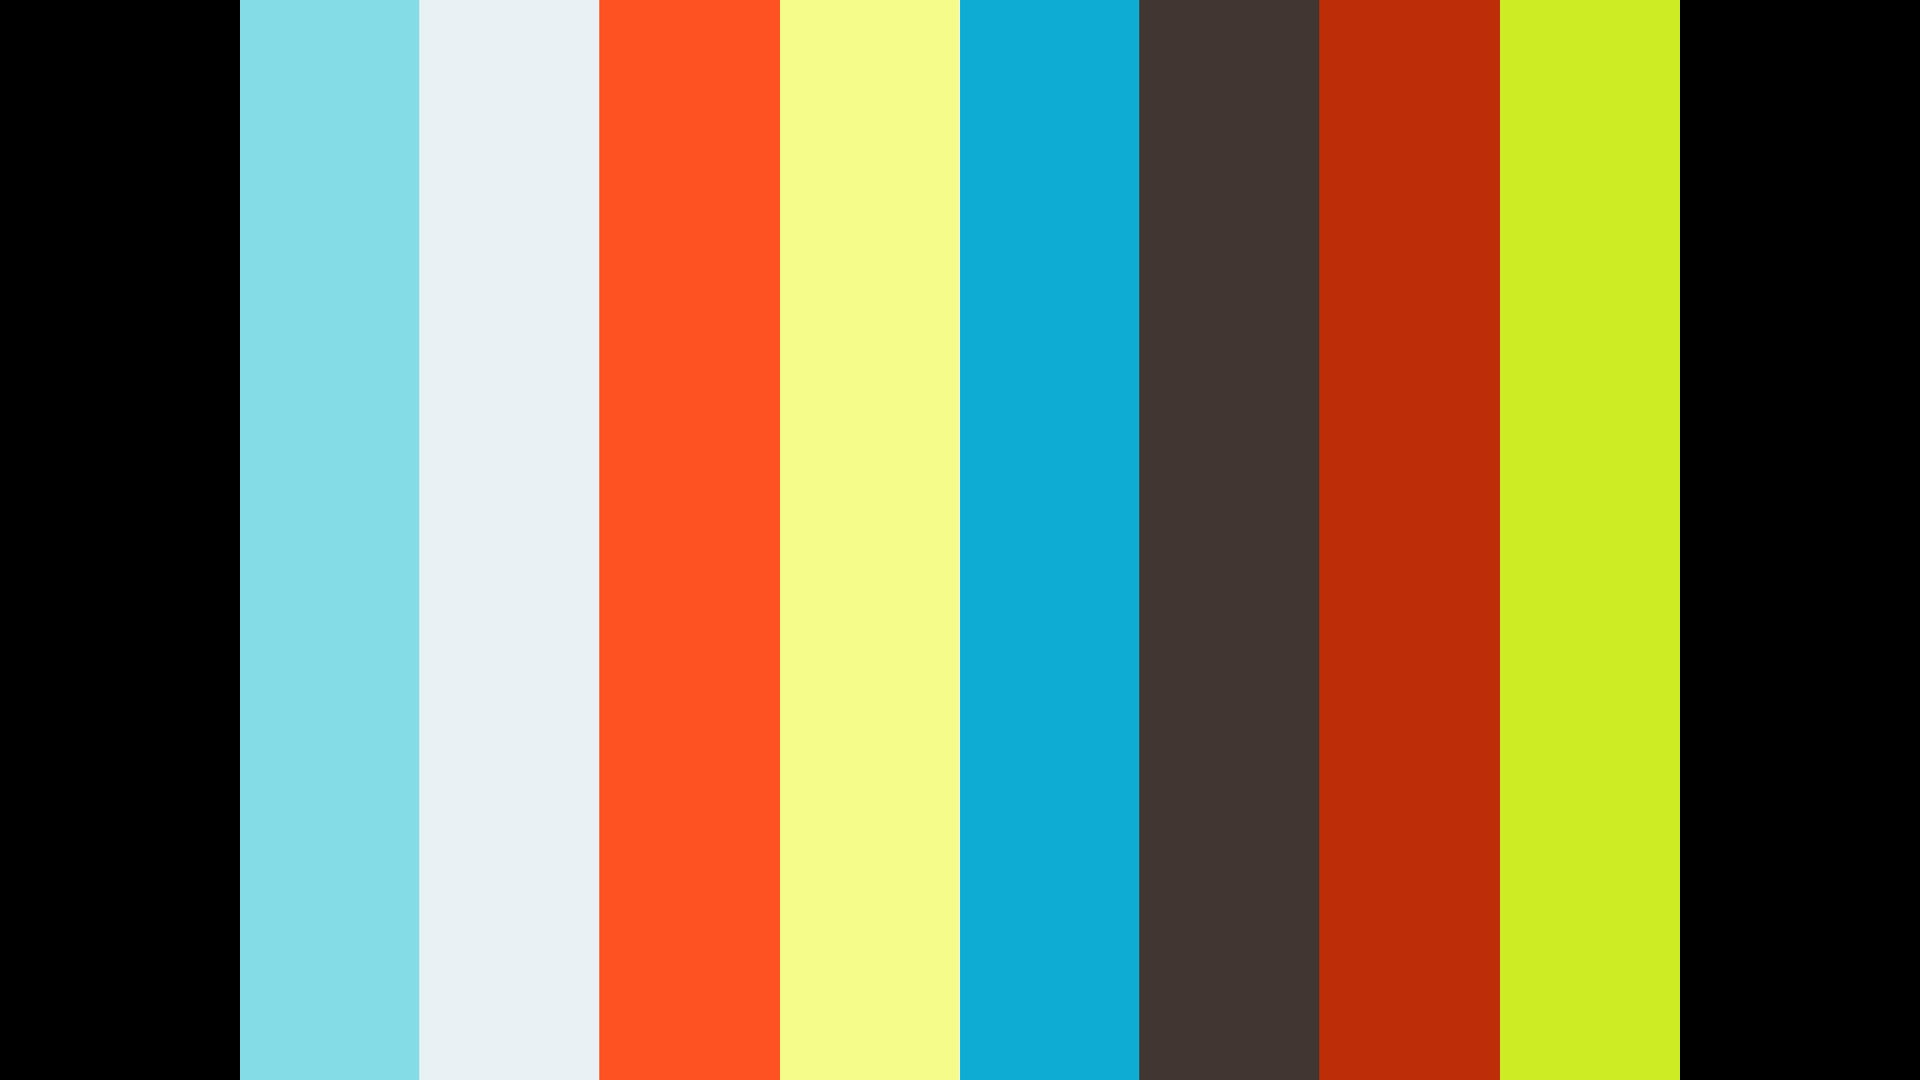 Barrier1 at ChannelNext East 2019